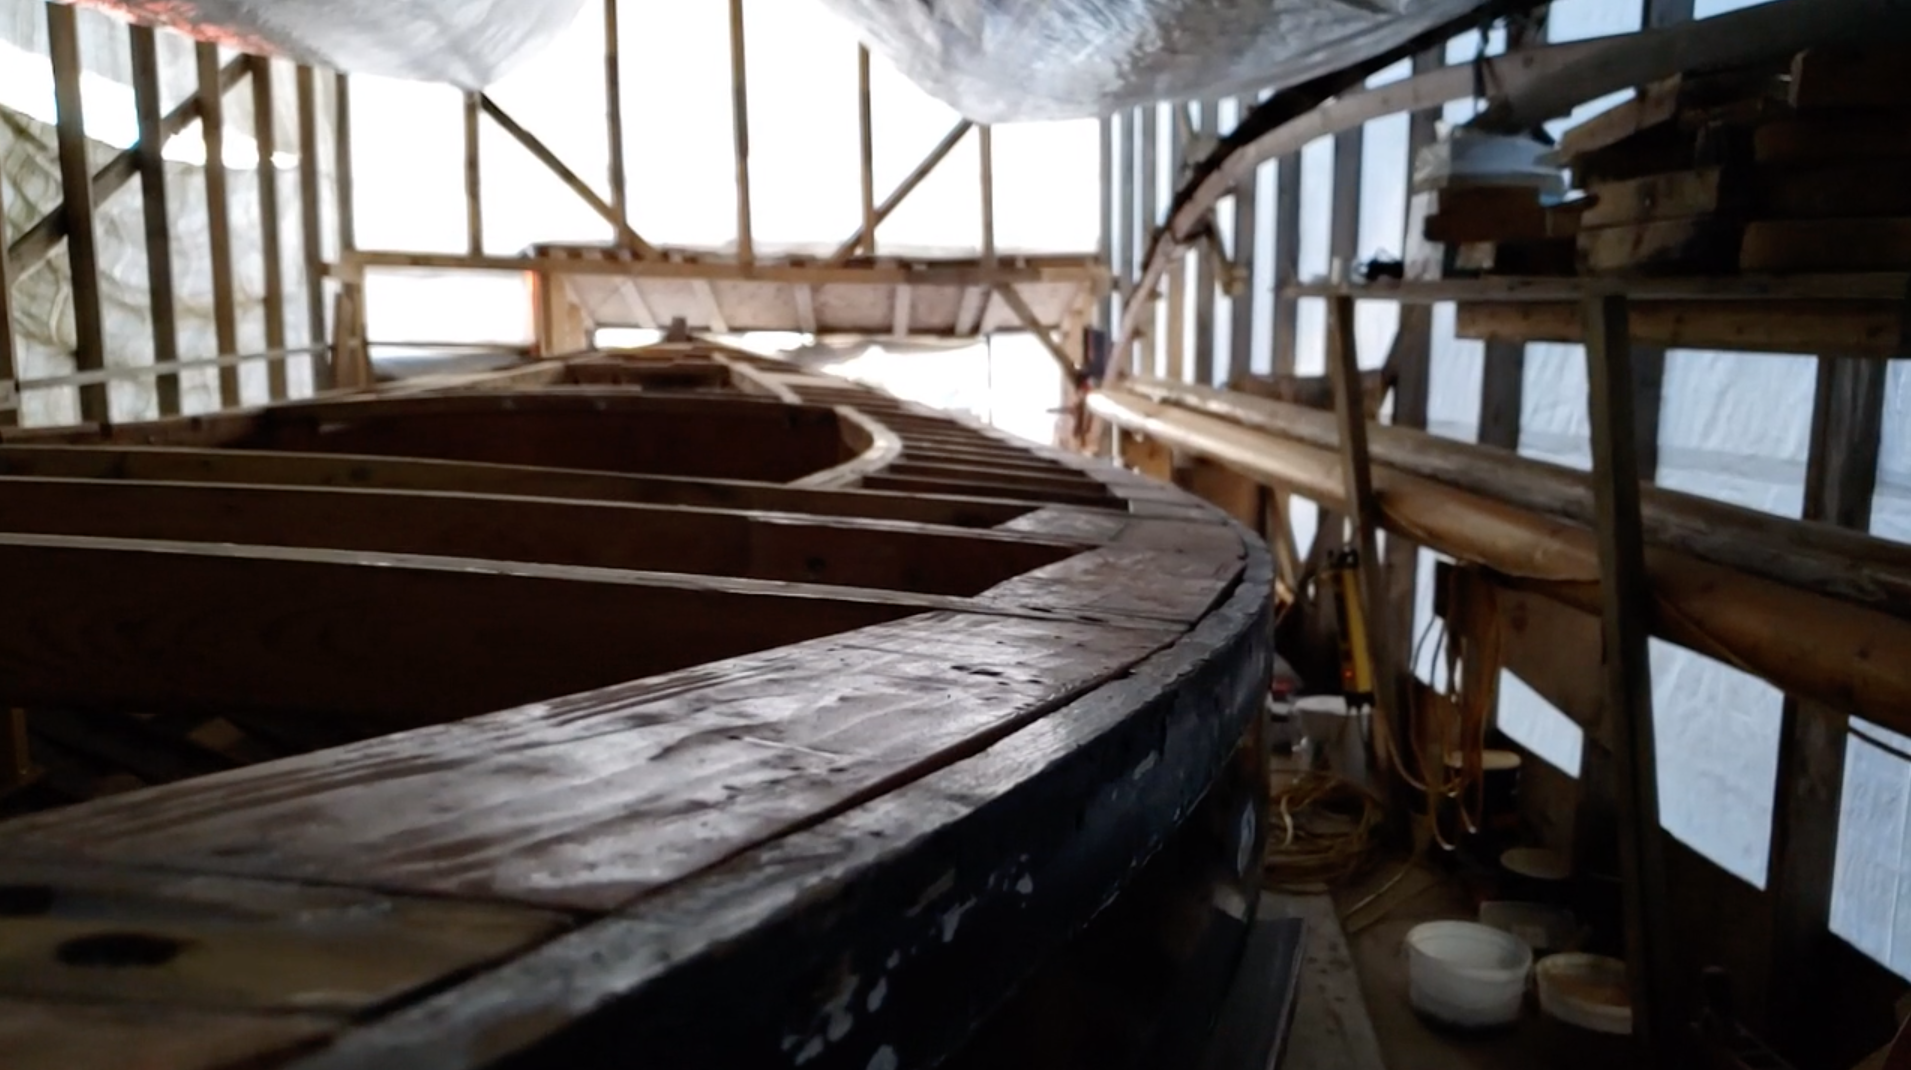 Boat tours, like this one of BC-based, Nanoose created the feeling of connection for which the Wooden Boat Festival is known.